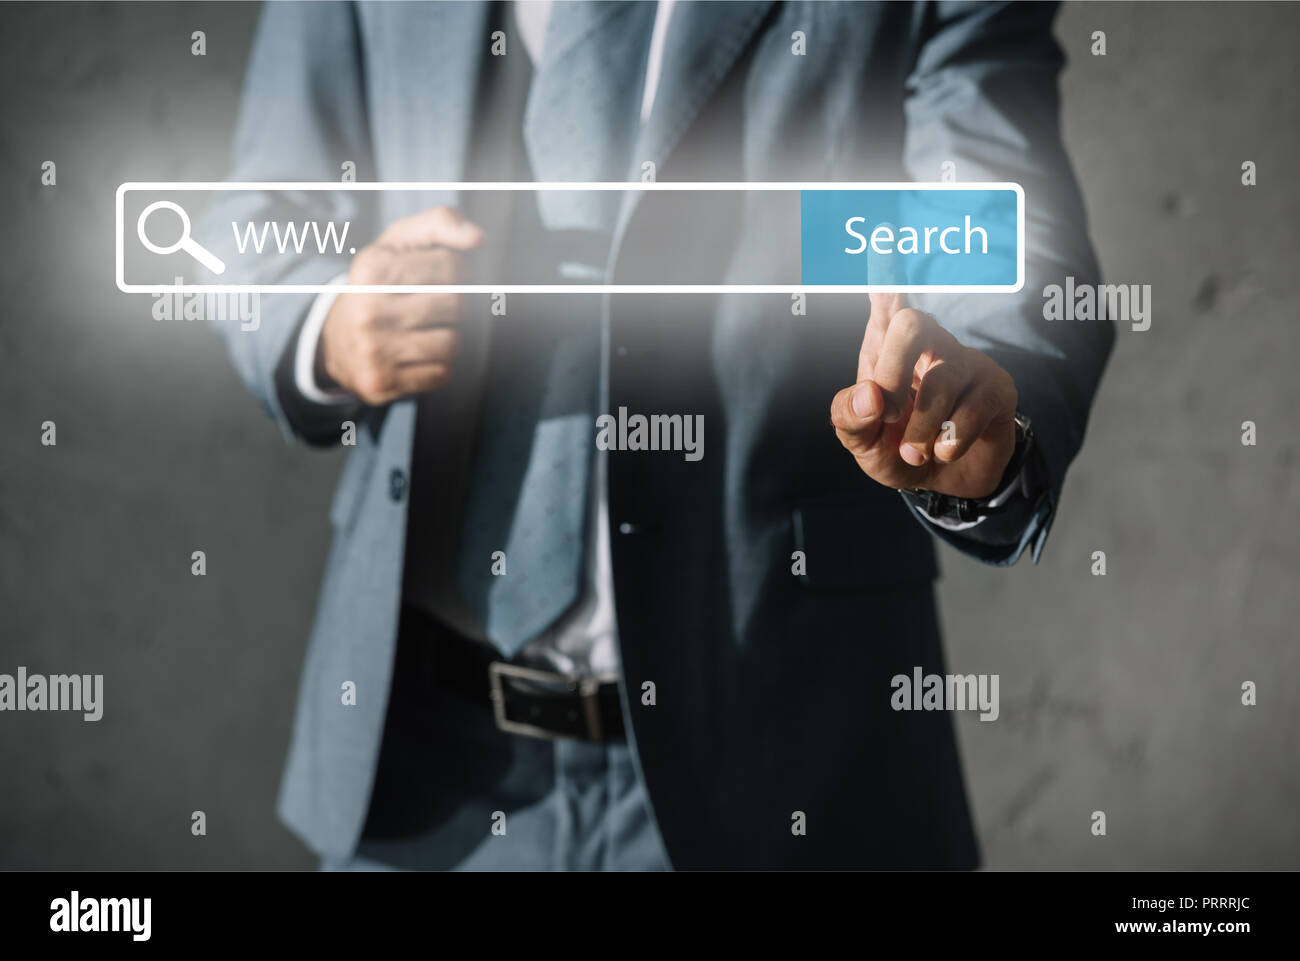 cropped view of developer in formal wear touching website search bar - Stock Image